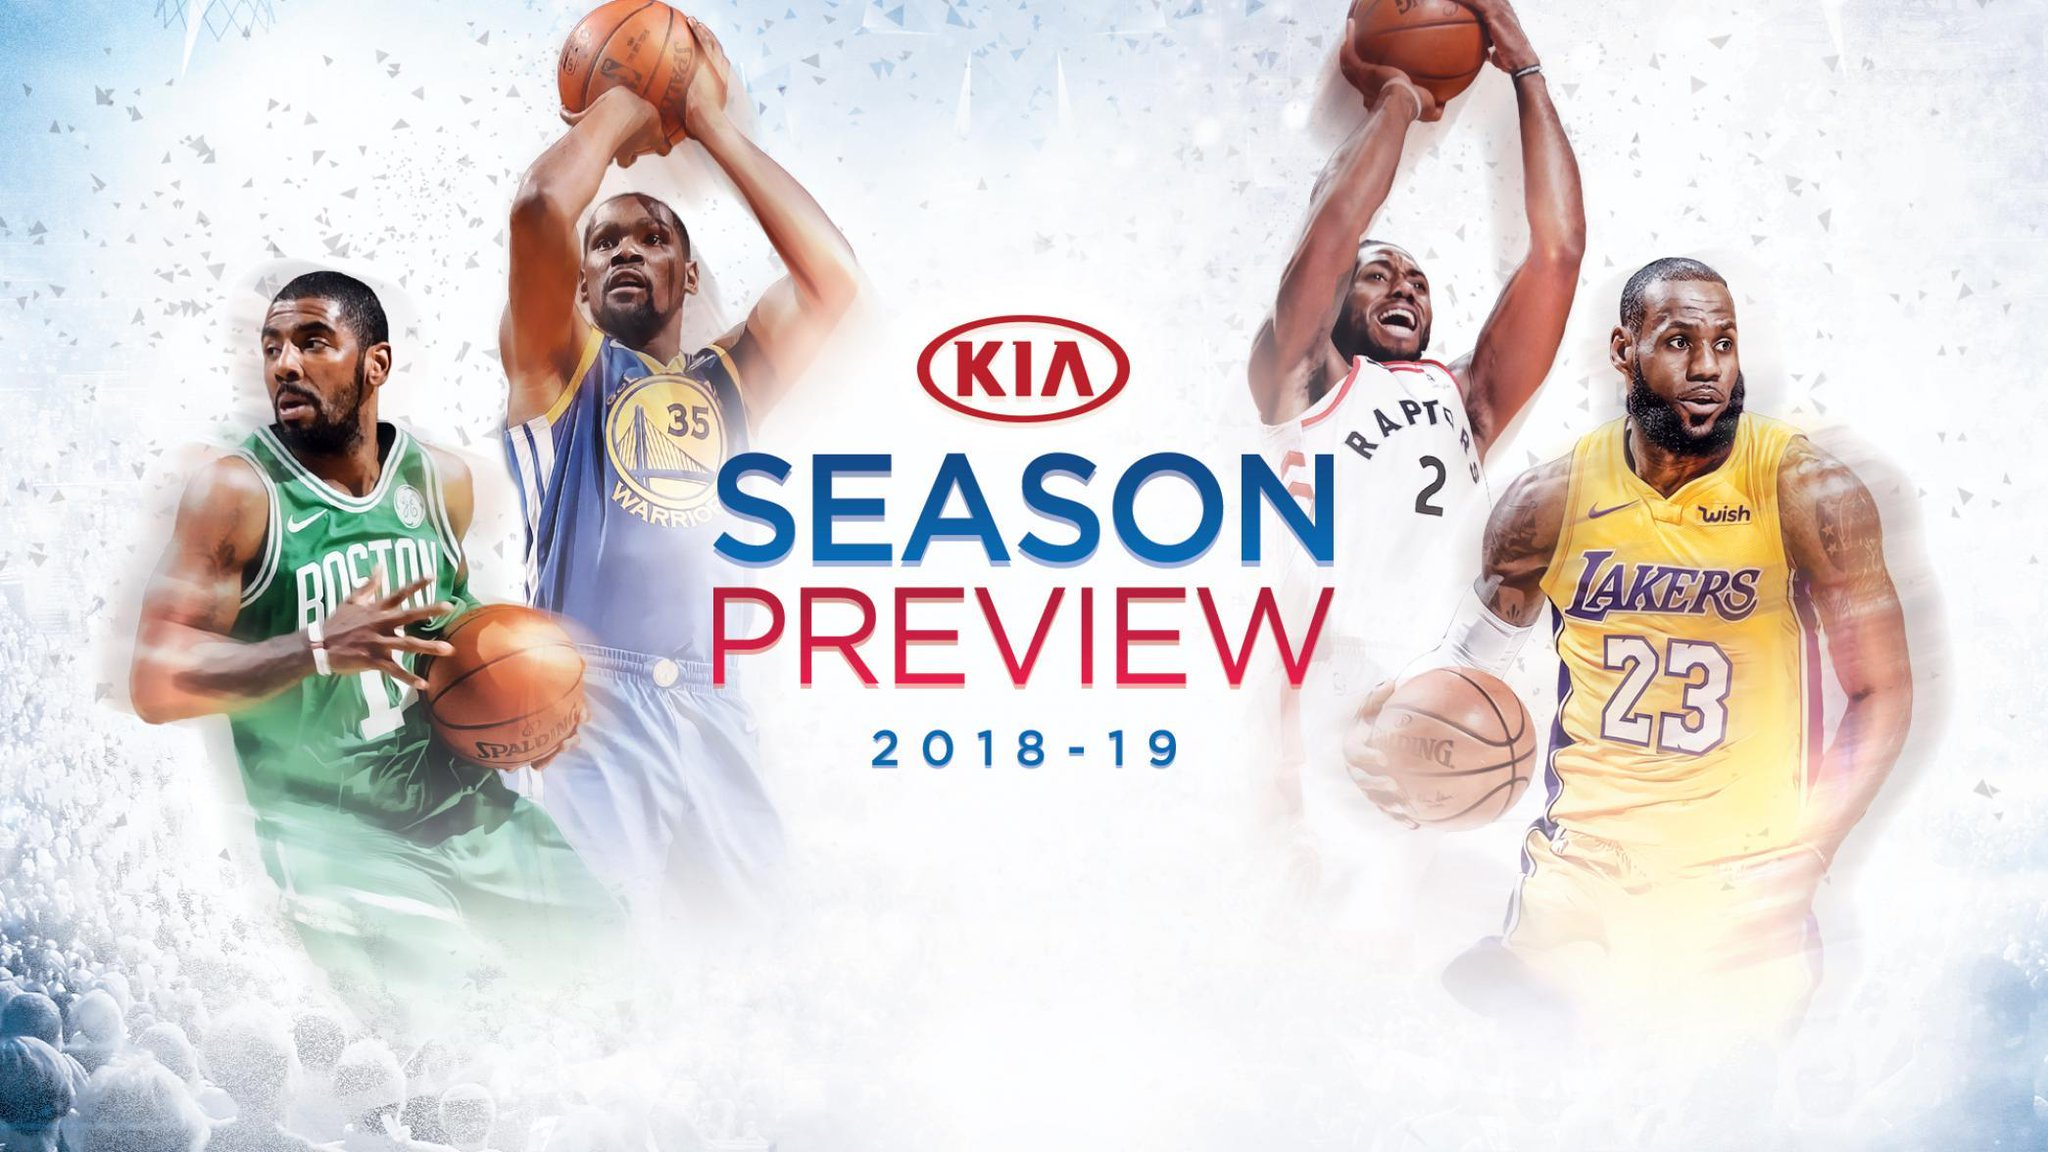 2018-19 Kia Season Preview: Team-by-team previews on https://t.co/Pqxh2EPubW! https://t.co/mHvcarHvCQ https://t.co/l7vMJ2EUQ0